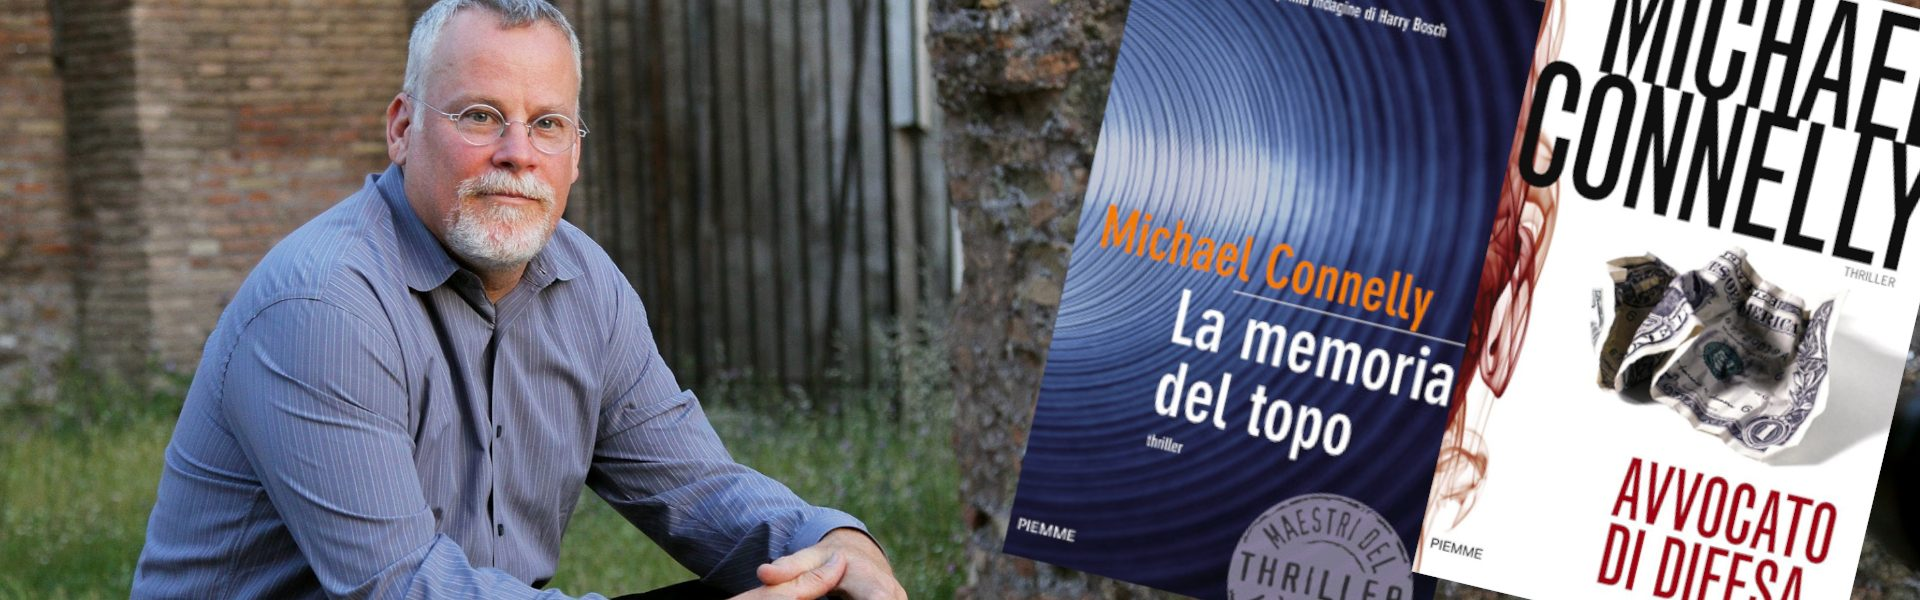 Gli audiolibri di Michael Connelly